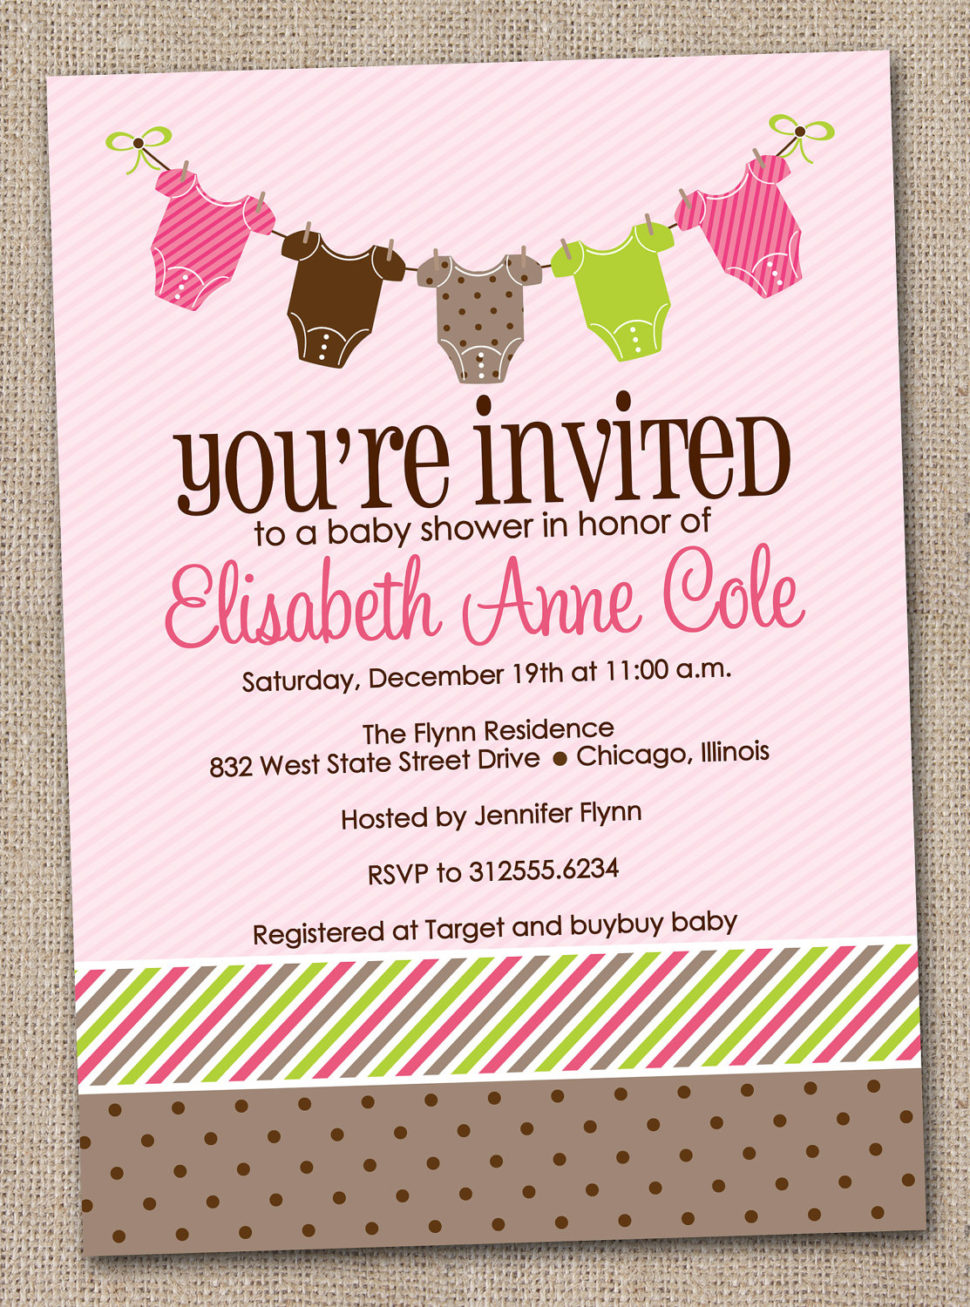 Medium Size of Baby Shower:63+ Delightful Cheap Baby Shower Invitations Image Inspirations Cheap Baby Shower Invitations Princess Baby Shower Baby Shower Gift Baskets Baby Shower Party Themes Baby Shower Restaurants Baby Shower Venues Nyc Baby Shower Invitations Astonishing Baby Baby Shower